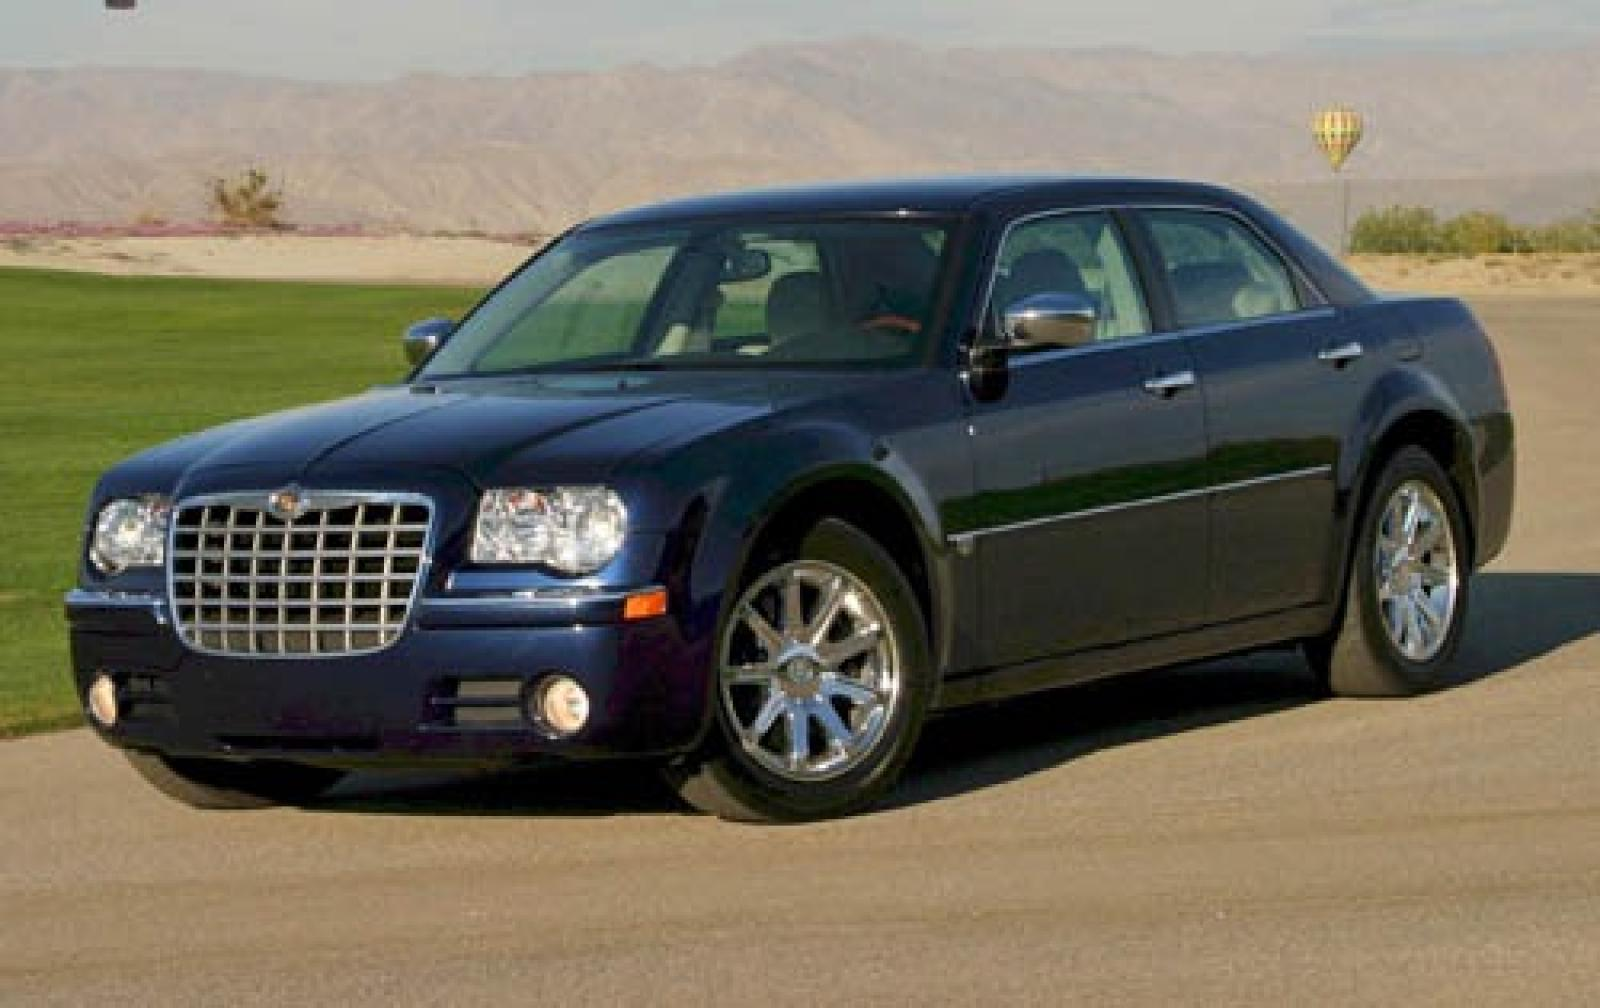 2007 Chrysler 300 Information And Photos Zombiedrive 1994 Lincoln Continental Signature Series Fuse Box Diagram Lzk Gallery